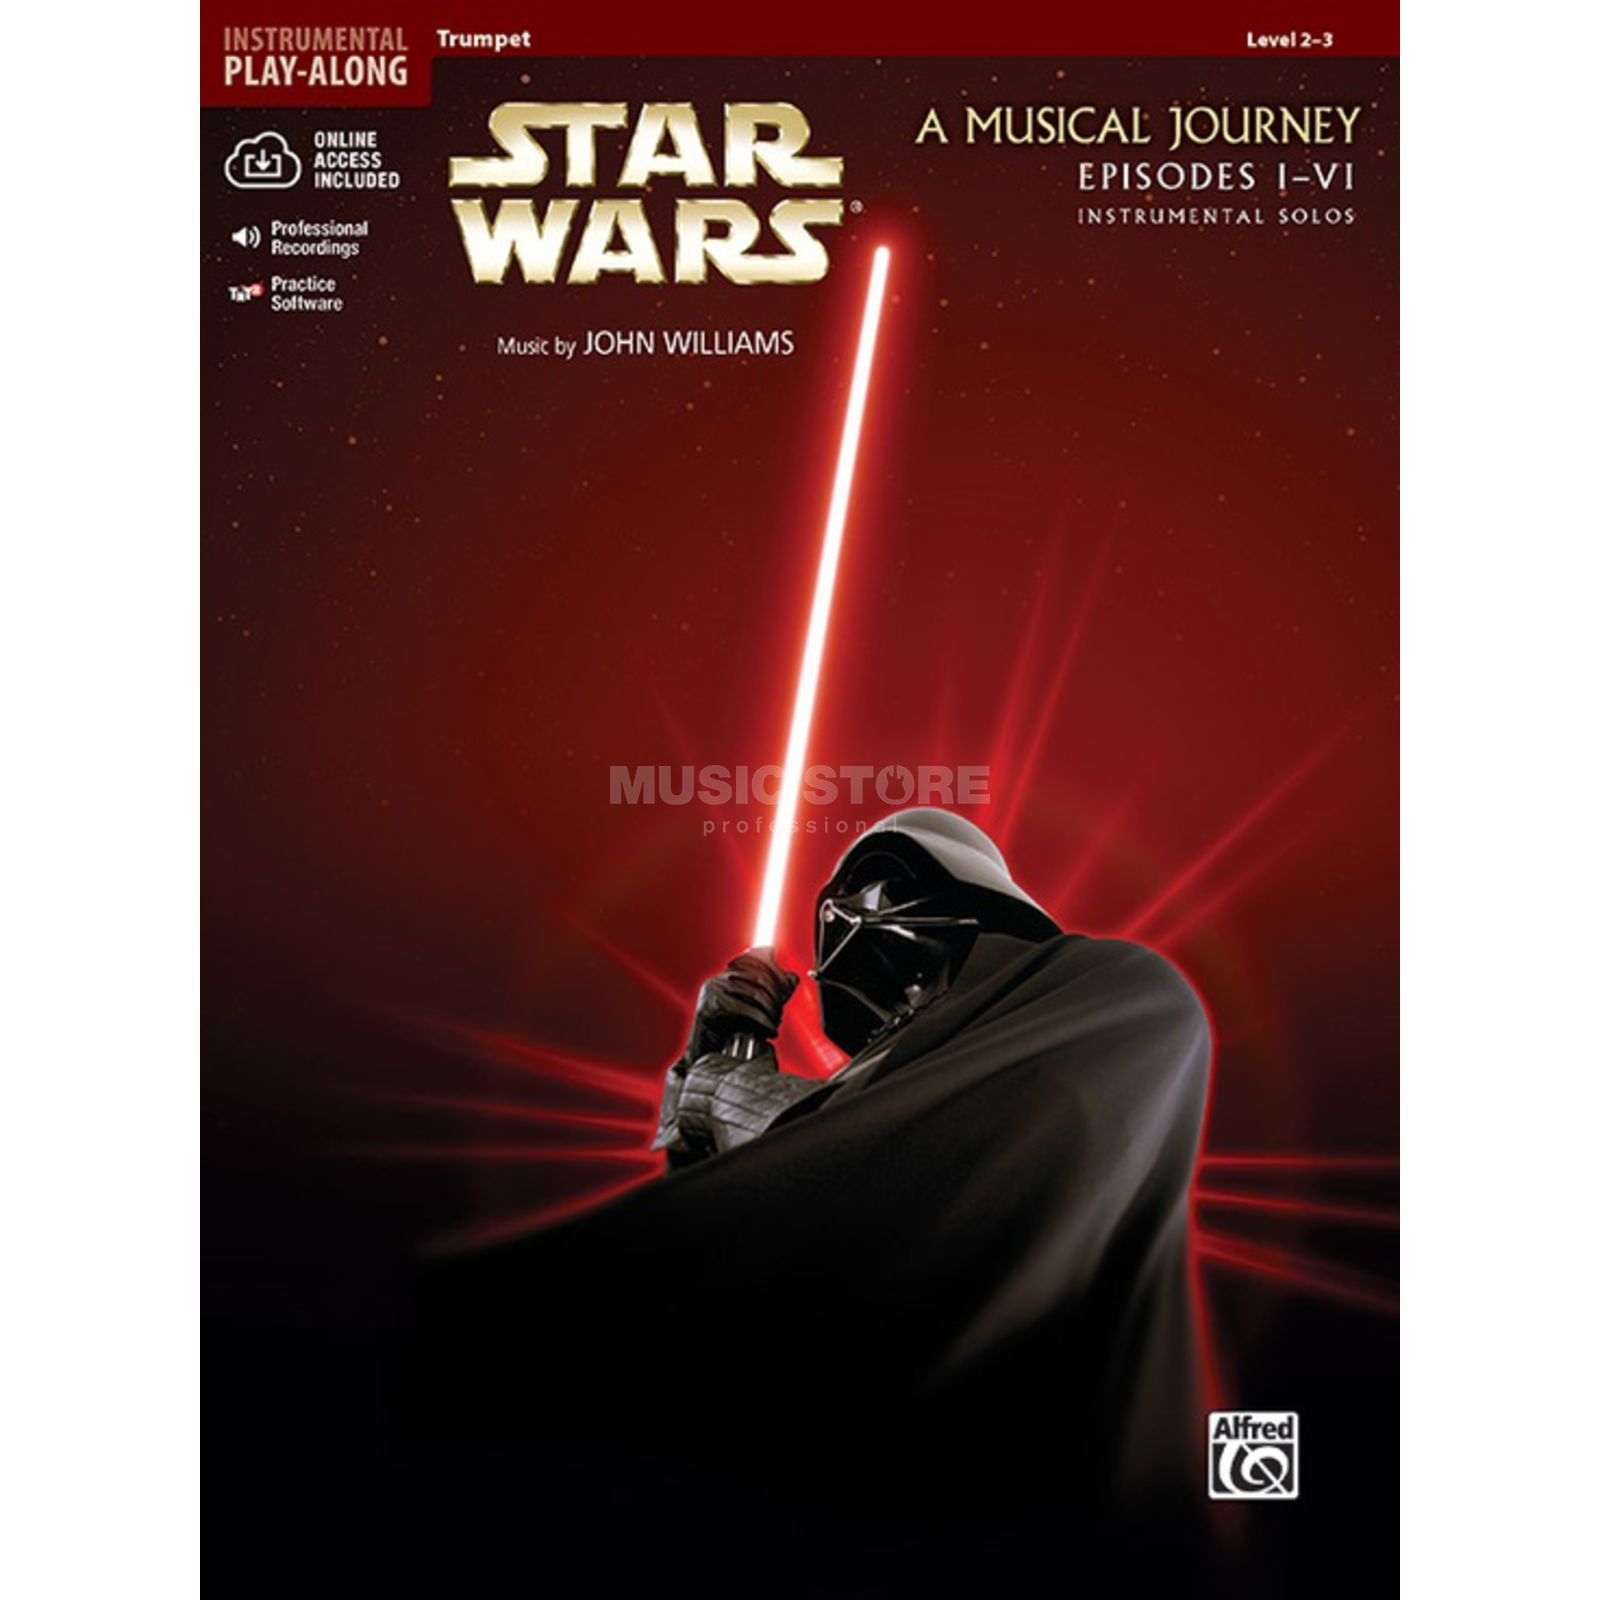 Alfred Music Star Wars 1-6 - Trumpet Instrumental Solos, Book/CD Produktbillede